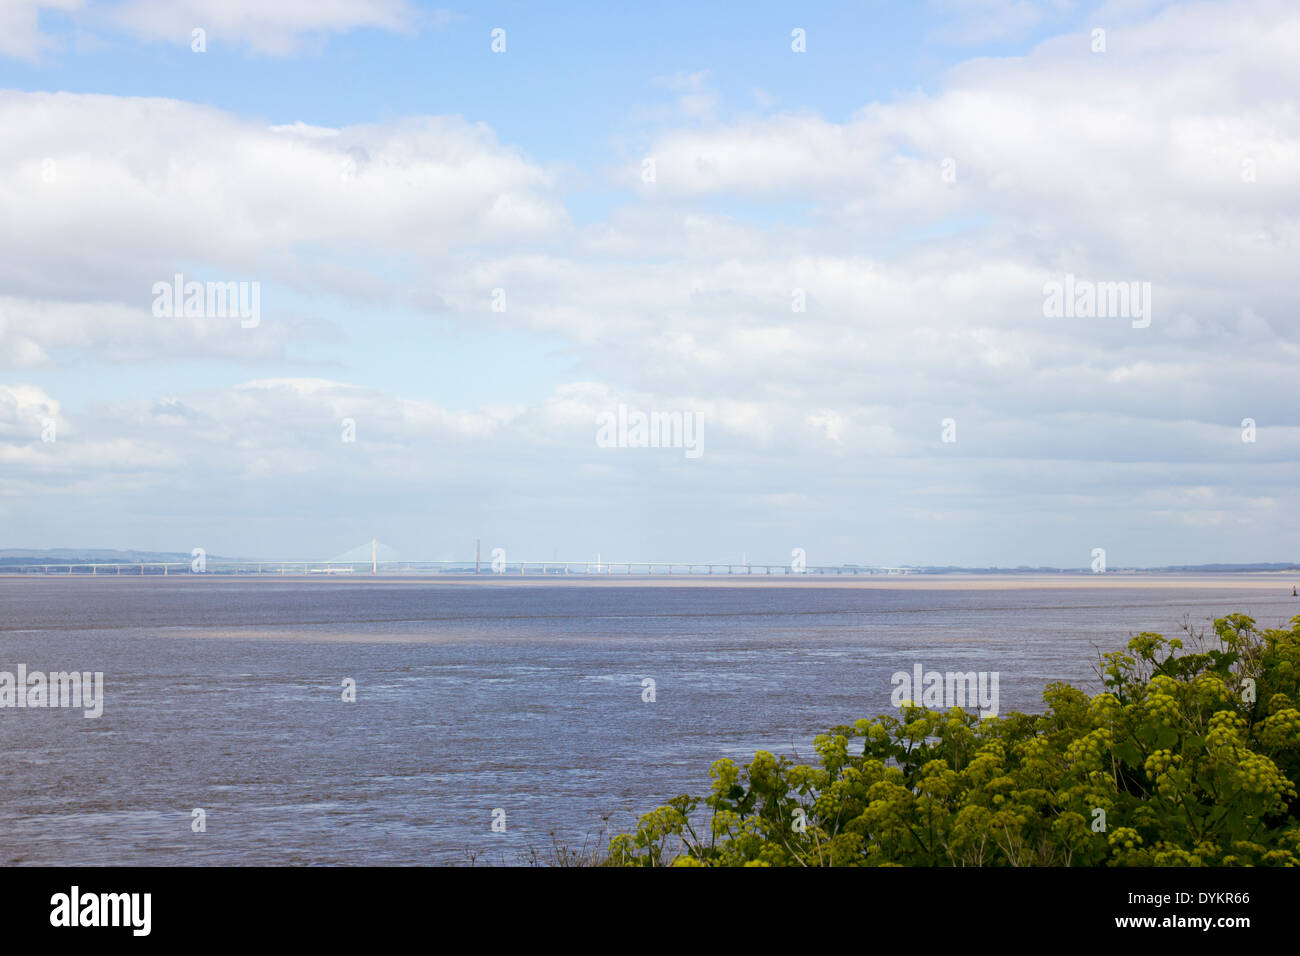 View from Portishead of the second Severn crossing from England to Wales - Stock Image